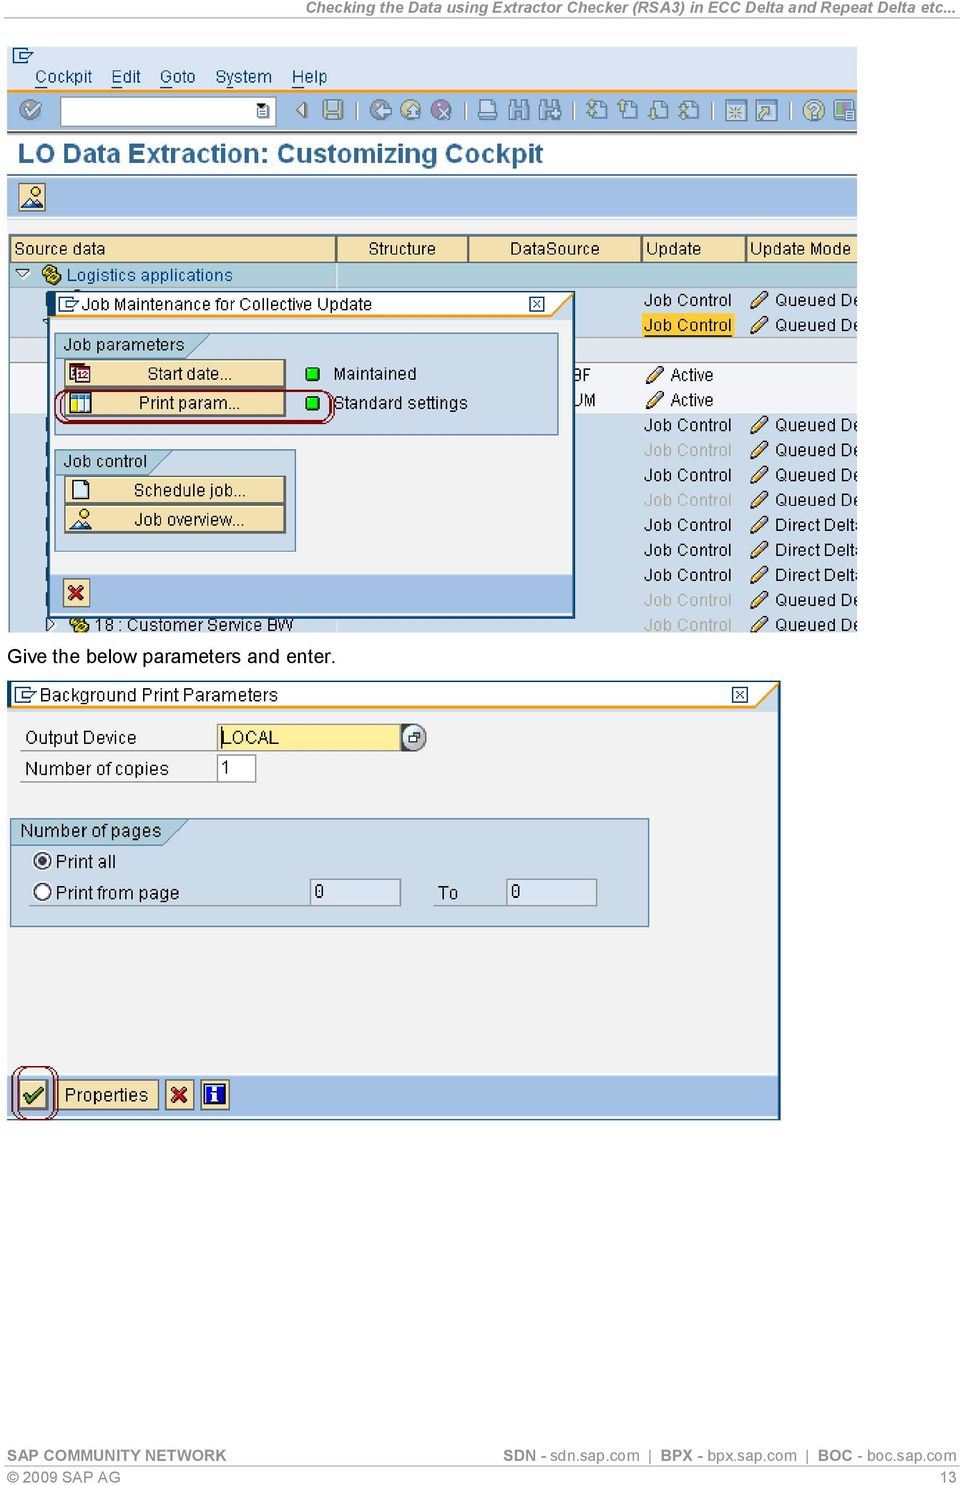 Checking the Data using Extractor Checker (RSA3) in ECC